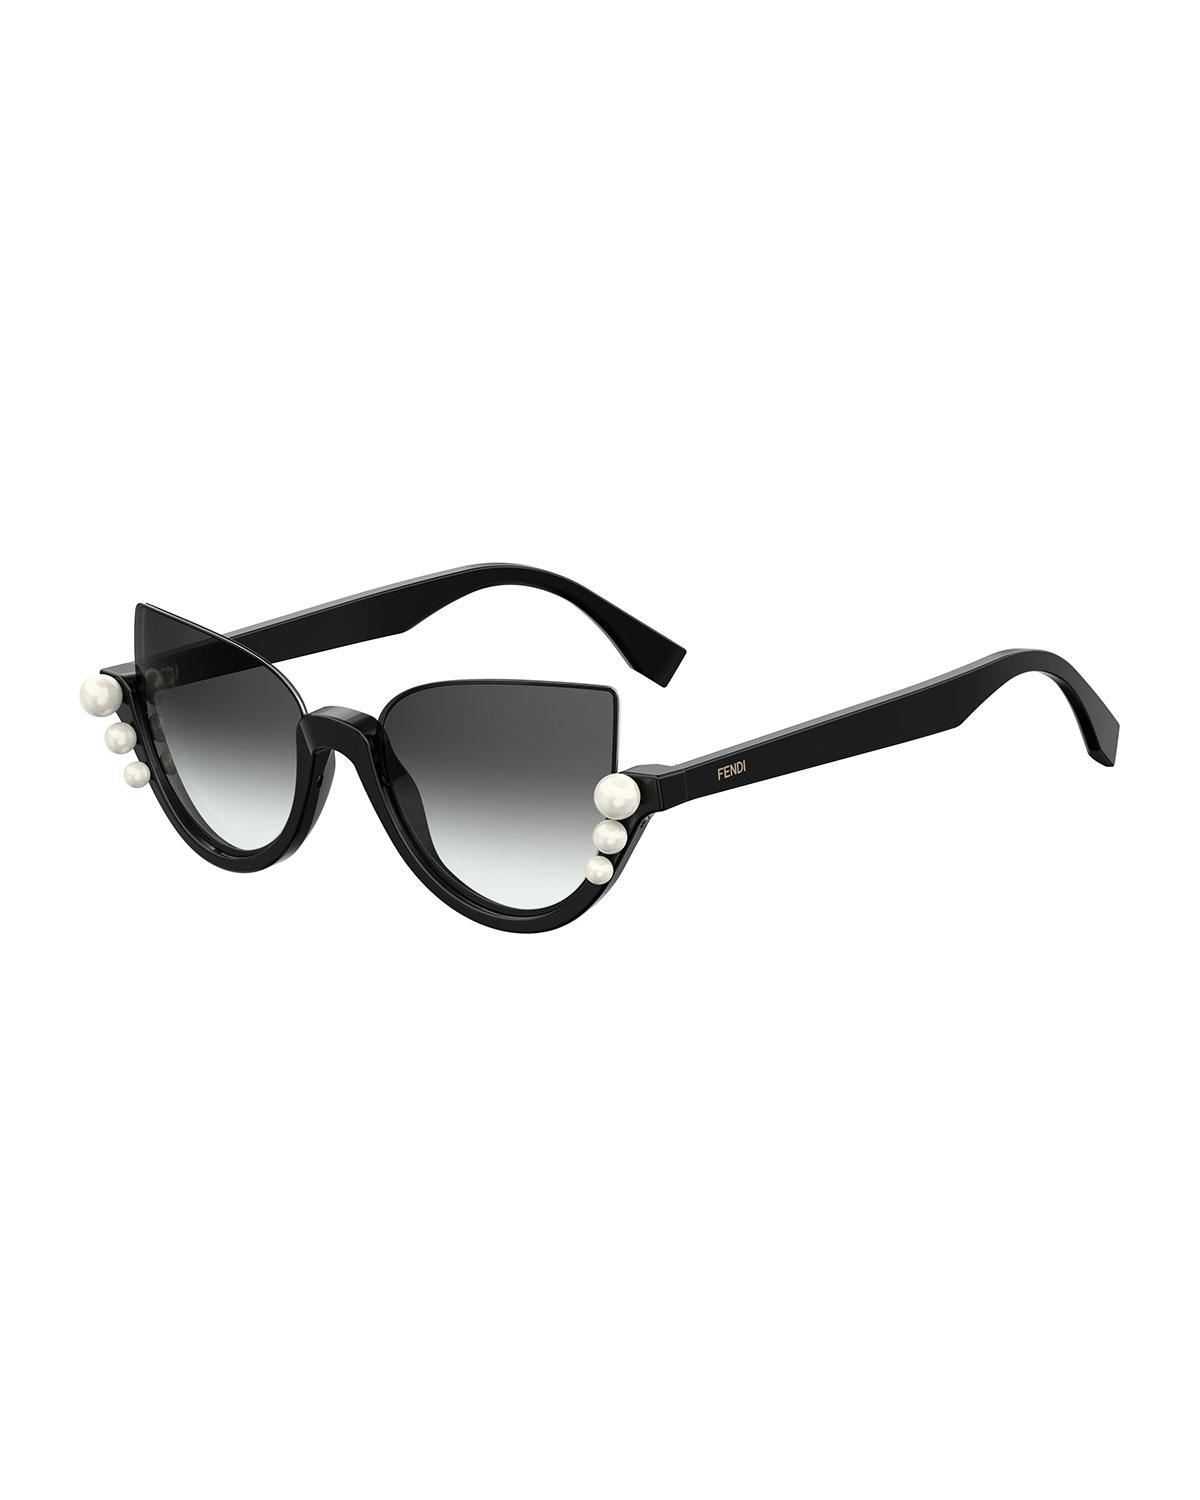 10033d24c4 Fendi - Black Blink Half-rim Pearl Cat-eye Sunglasses - Lyst. View  fullscreen